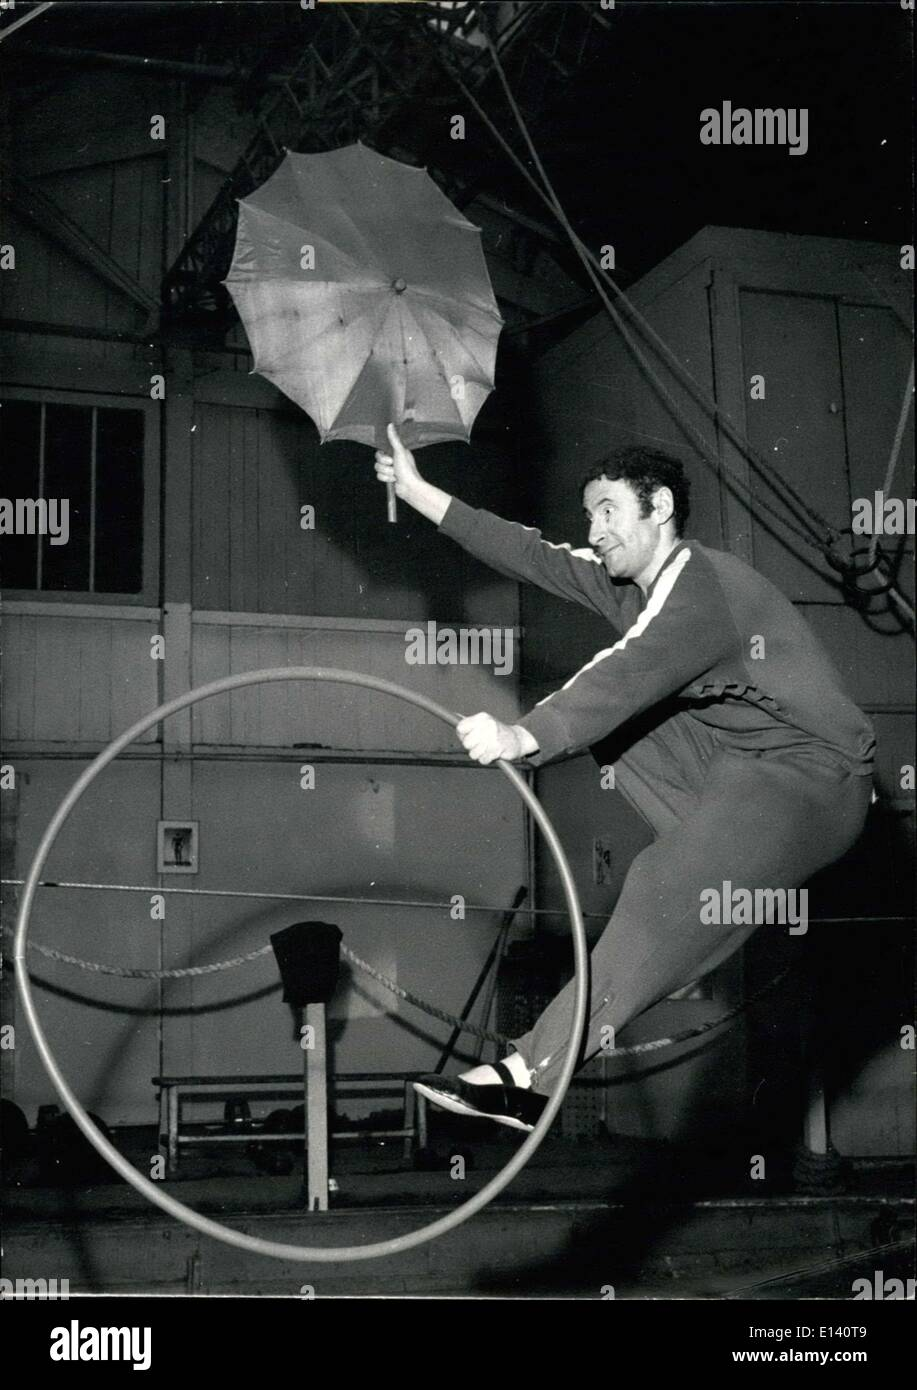 Mar. 31, 2012 - French Mime Marcel Marceau as a rope dancer.: The famous french dancer actor and acrobat, Marcel Marceau, will perform at the annual Gala De L'Union in Paris very soon. Photo shows M. Marceau showing his extraordinary agility as a tight rope walker. - Stock Image